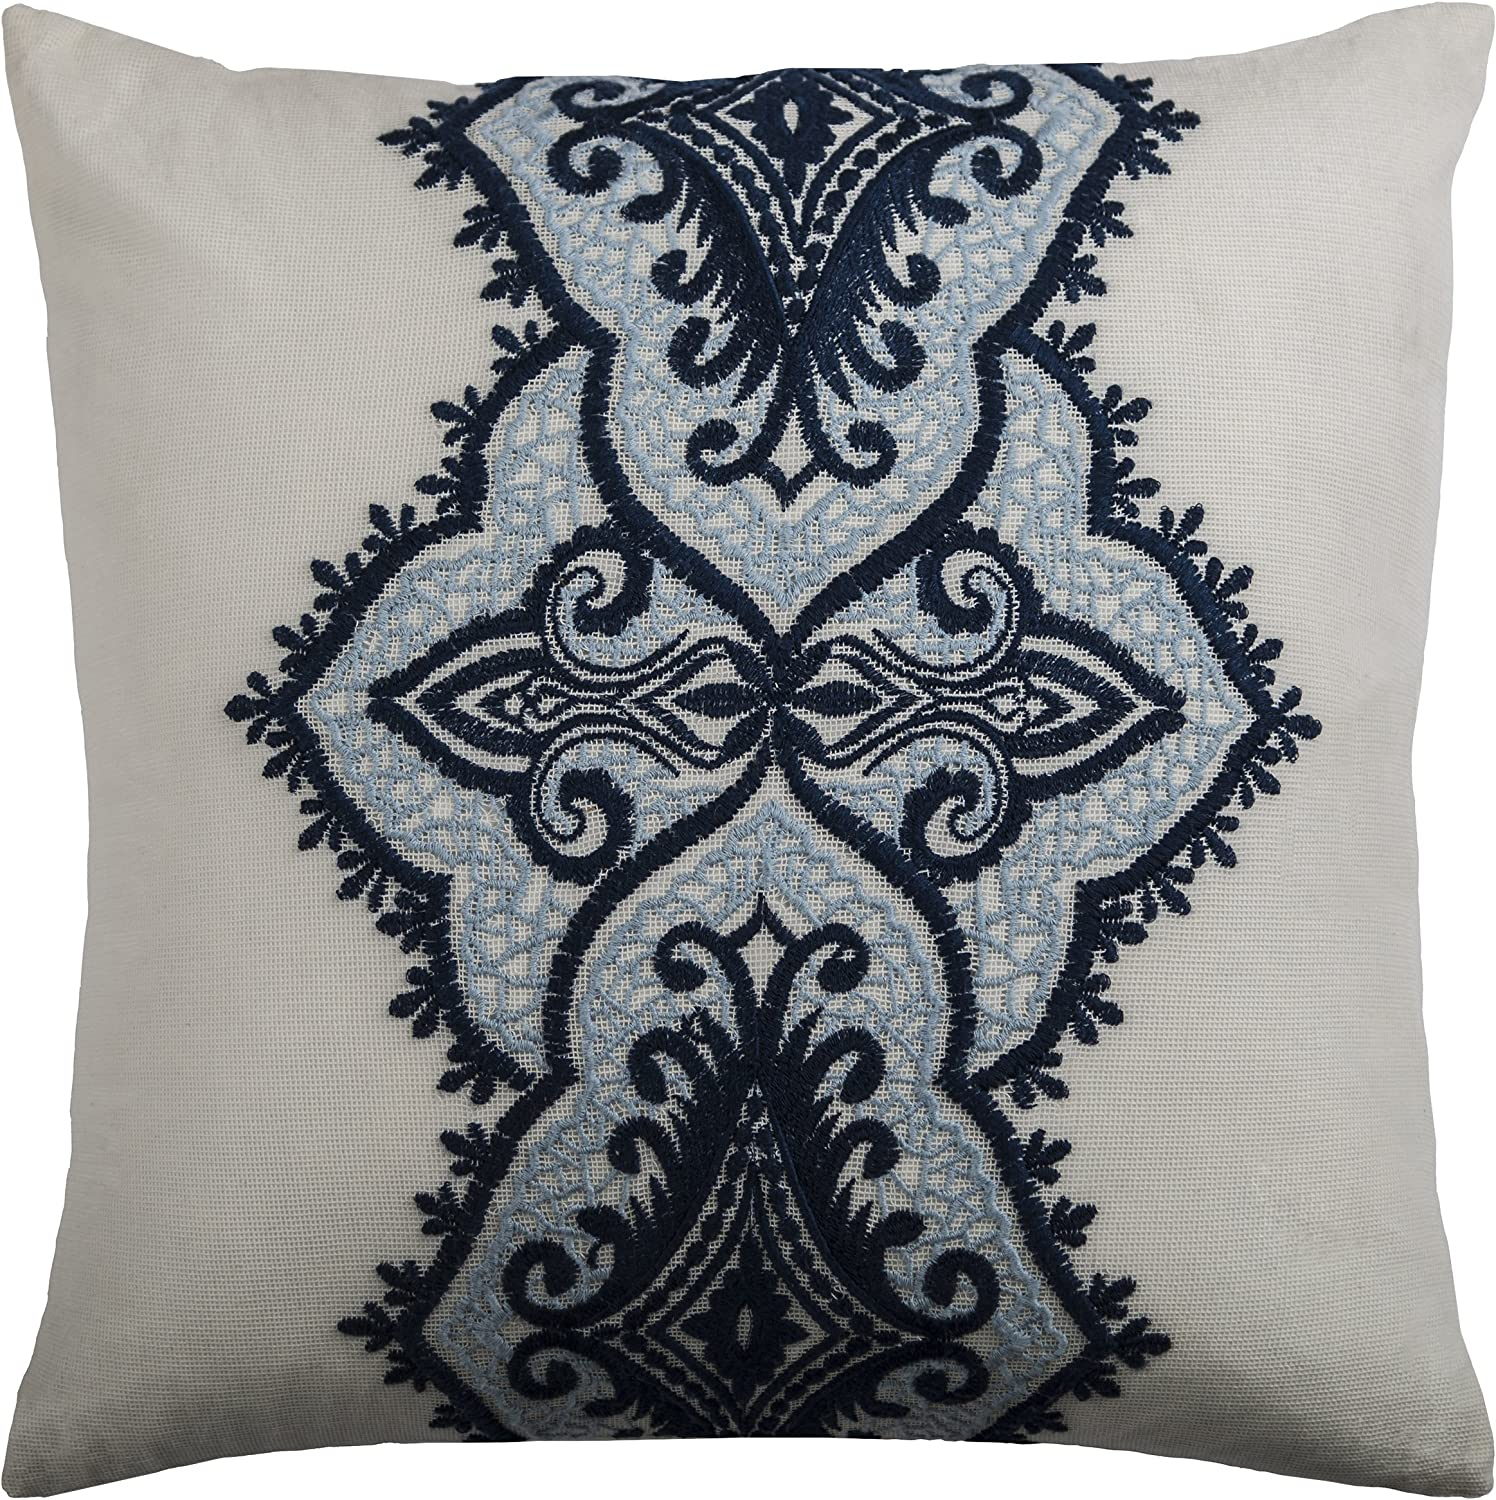 Rizzy Popular Home T09705 Decorative Pillow Navy 18